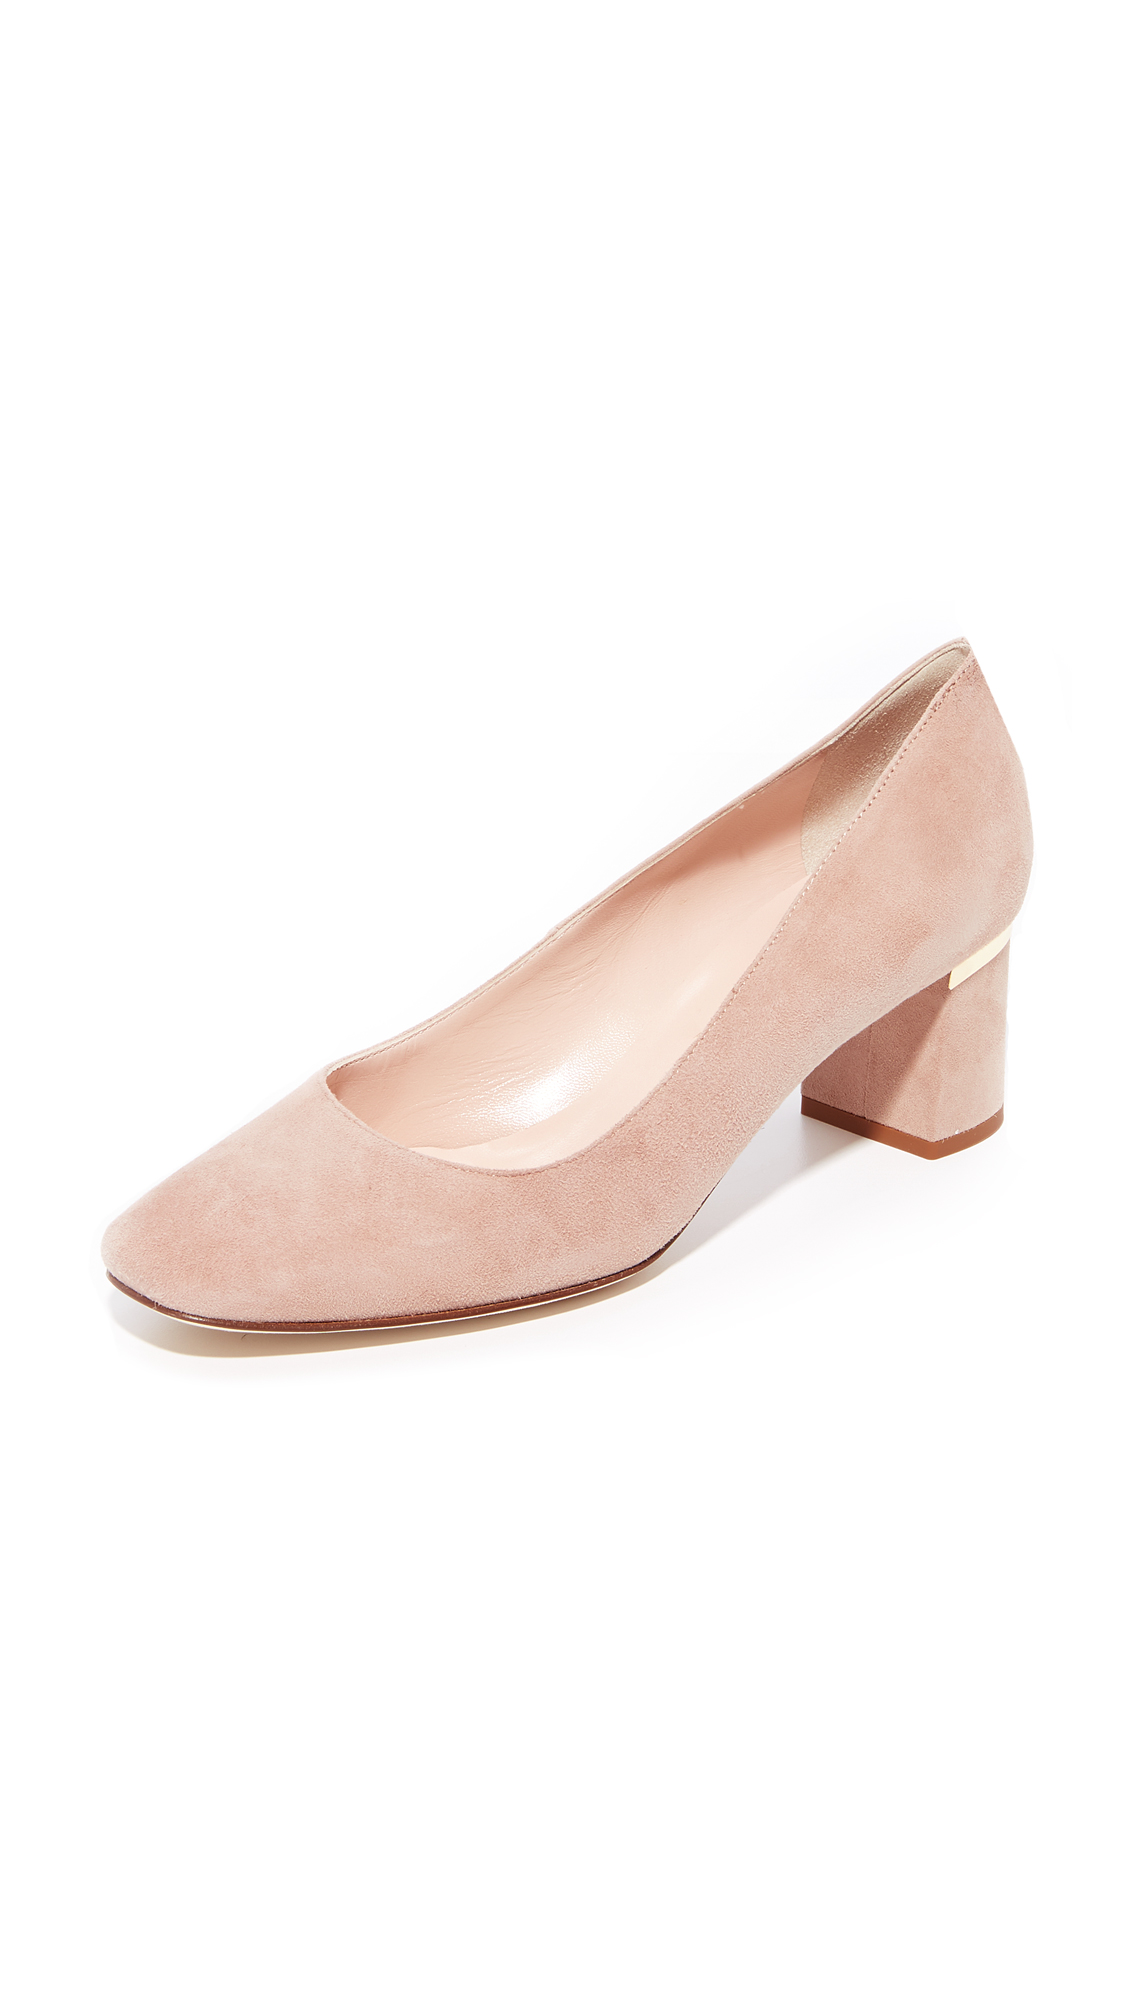 Kate Spade New York Dolores Too Ballet Pumps - Fawn